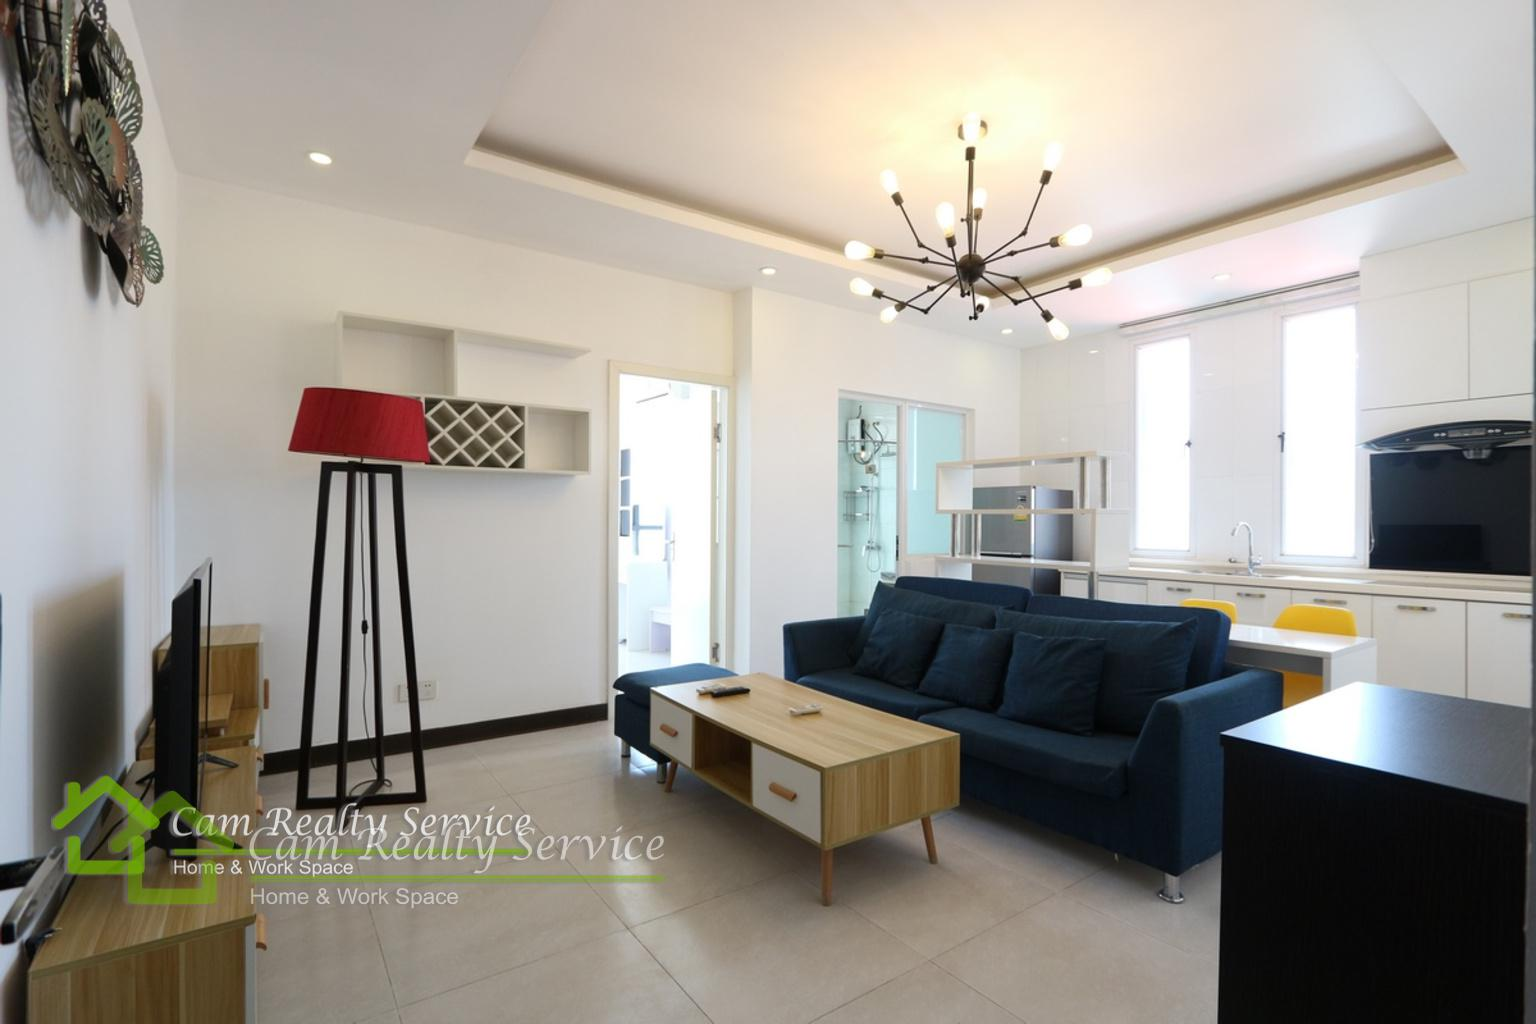 Wat Phnom area| Modern style 1 bedroom apartment available for rent 500$/month Up| Pool & Gym|